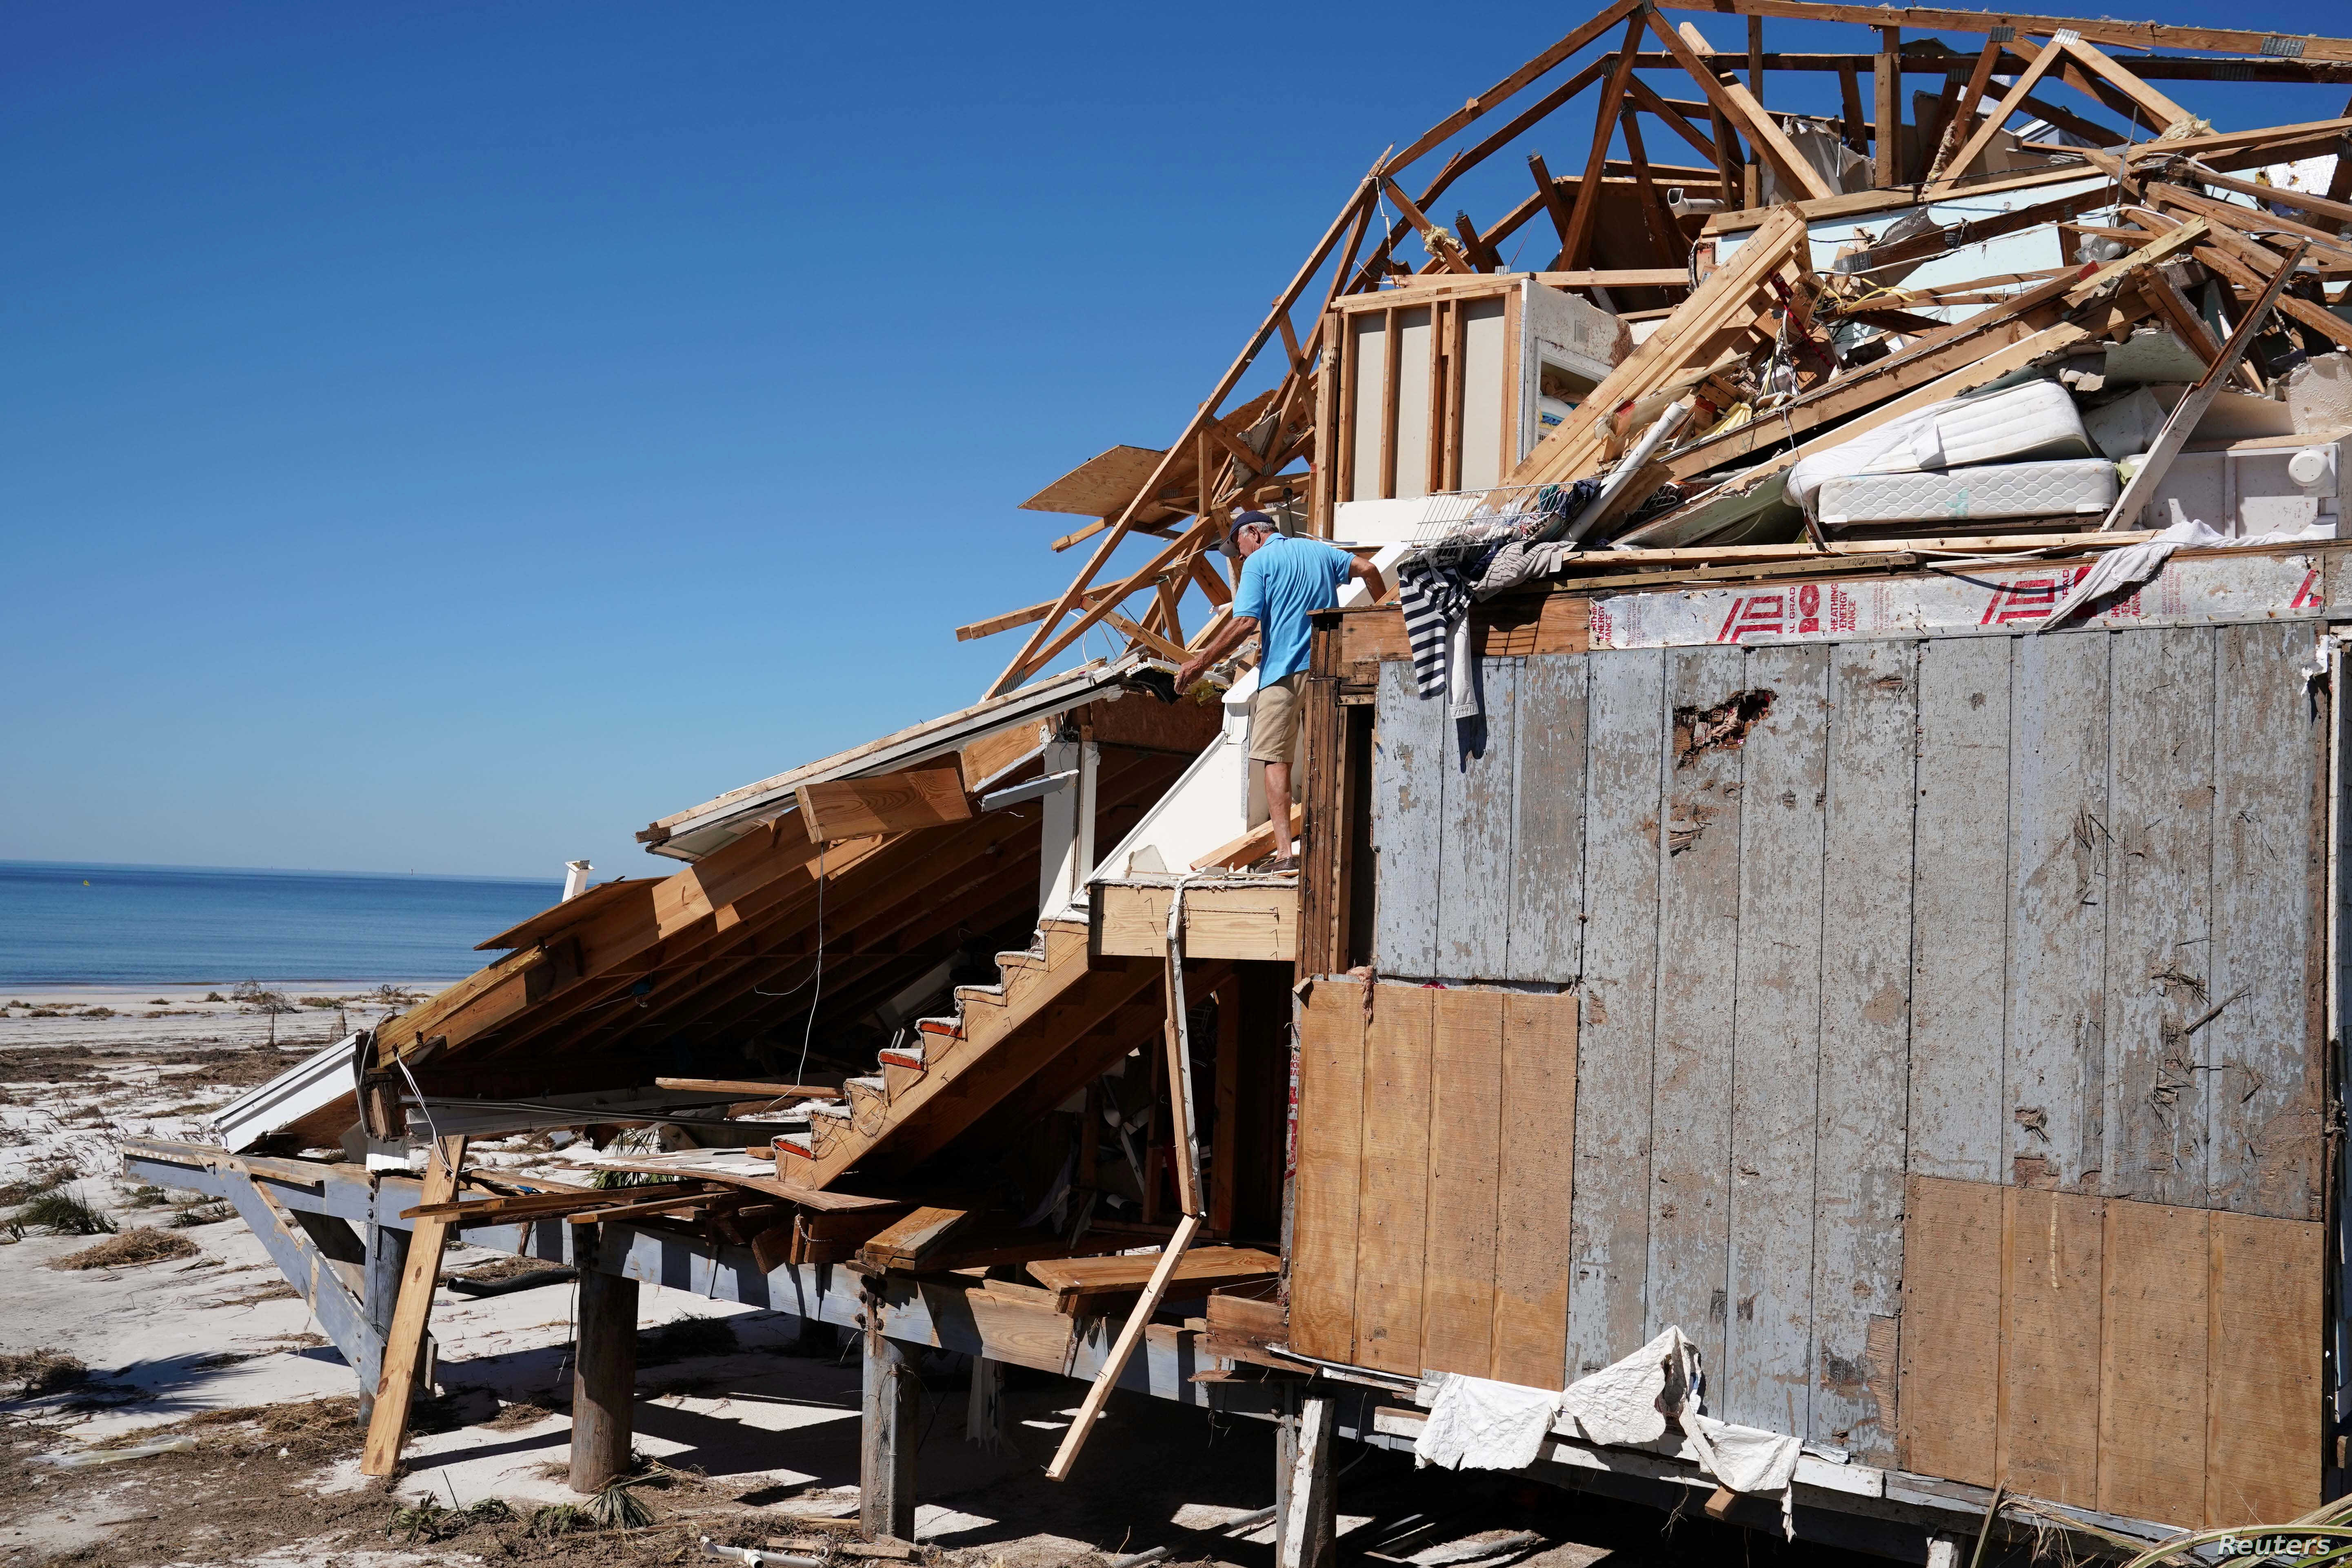 People clean up their house that was destroyed by Hurricane Michael in Mexico Beach, Fla., Oct. 13, 2018.